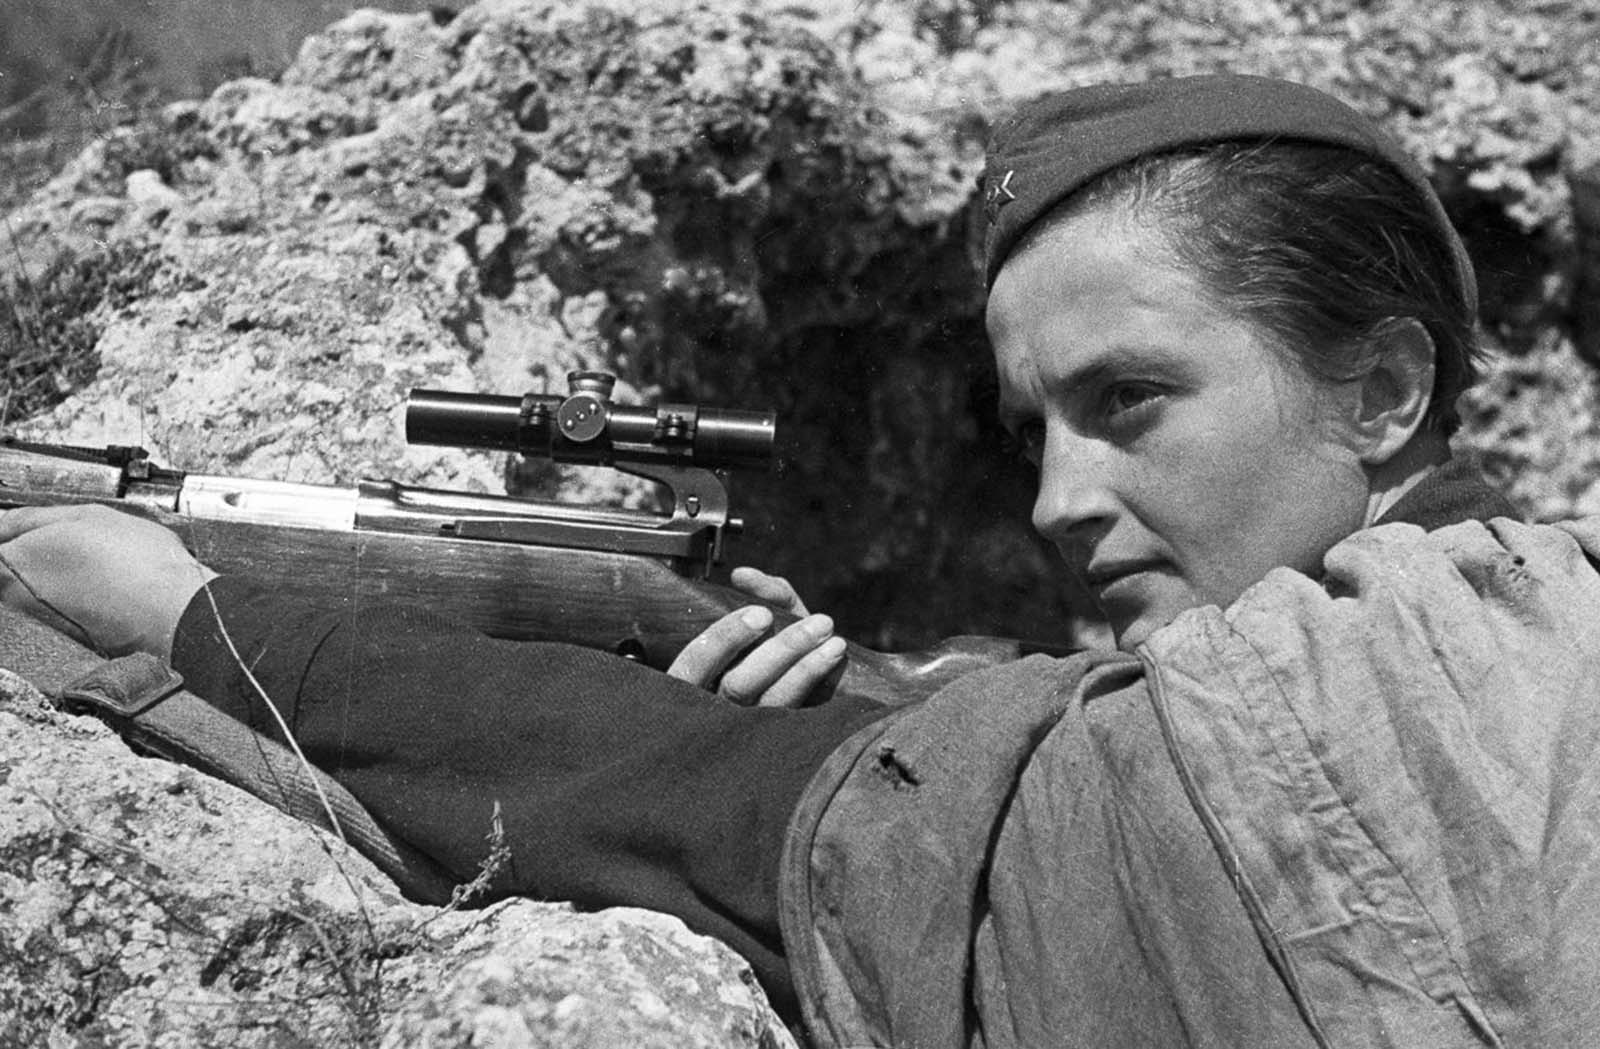 Lyudmila Pavlichenko in combat at Sevastopol. With 309 confirmed kills, she is one the deadliest snipers in history. June, 1942.